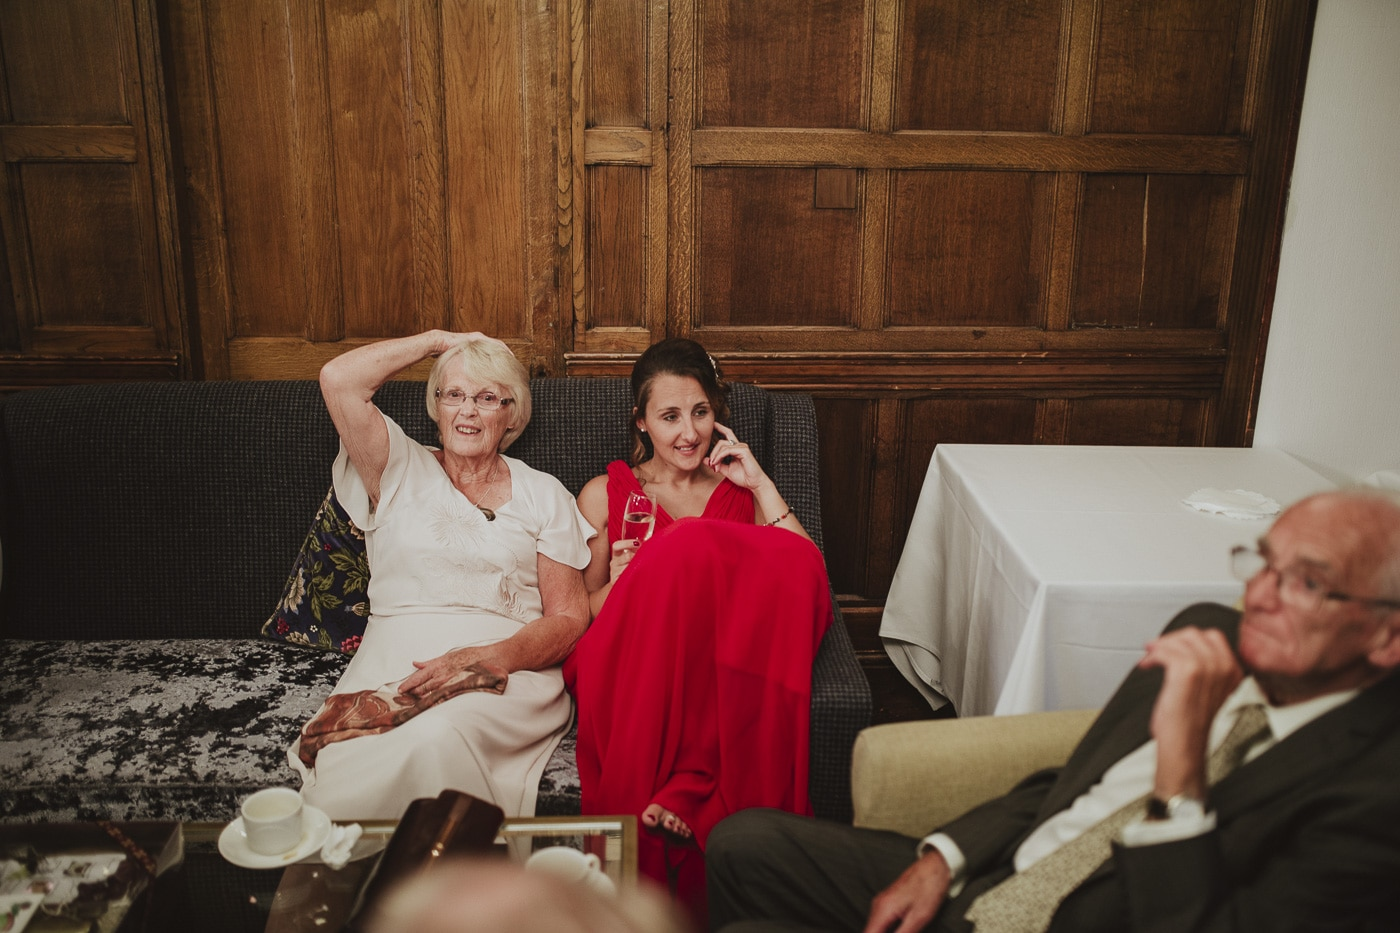 Guests sitting and relaxing for wedding photography by Joshua Wyborn